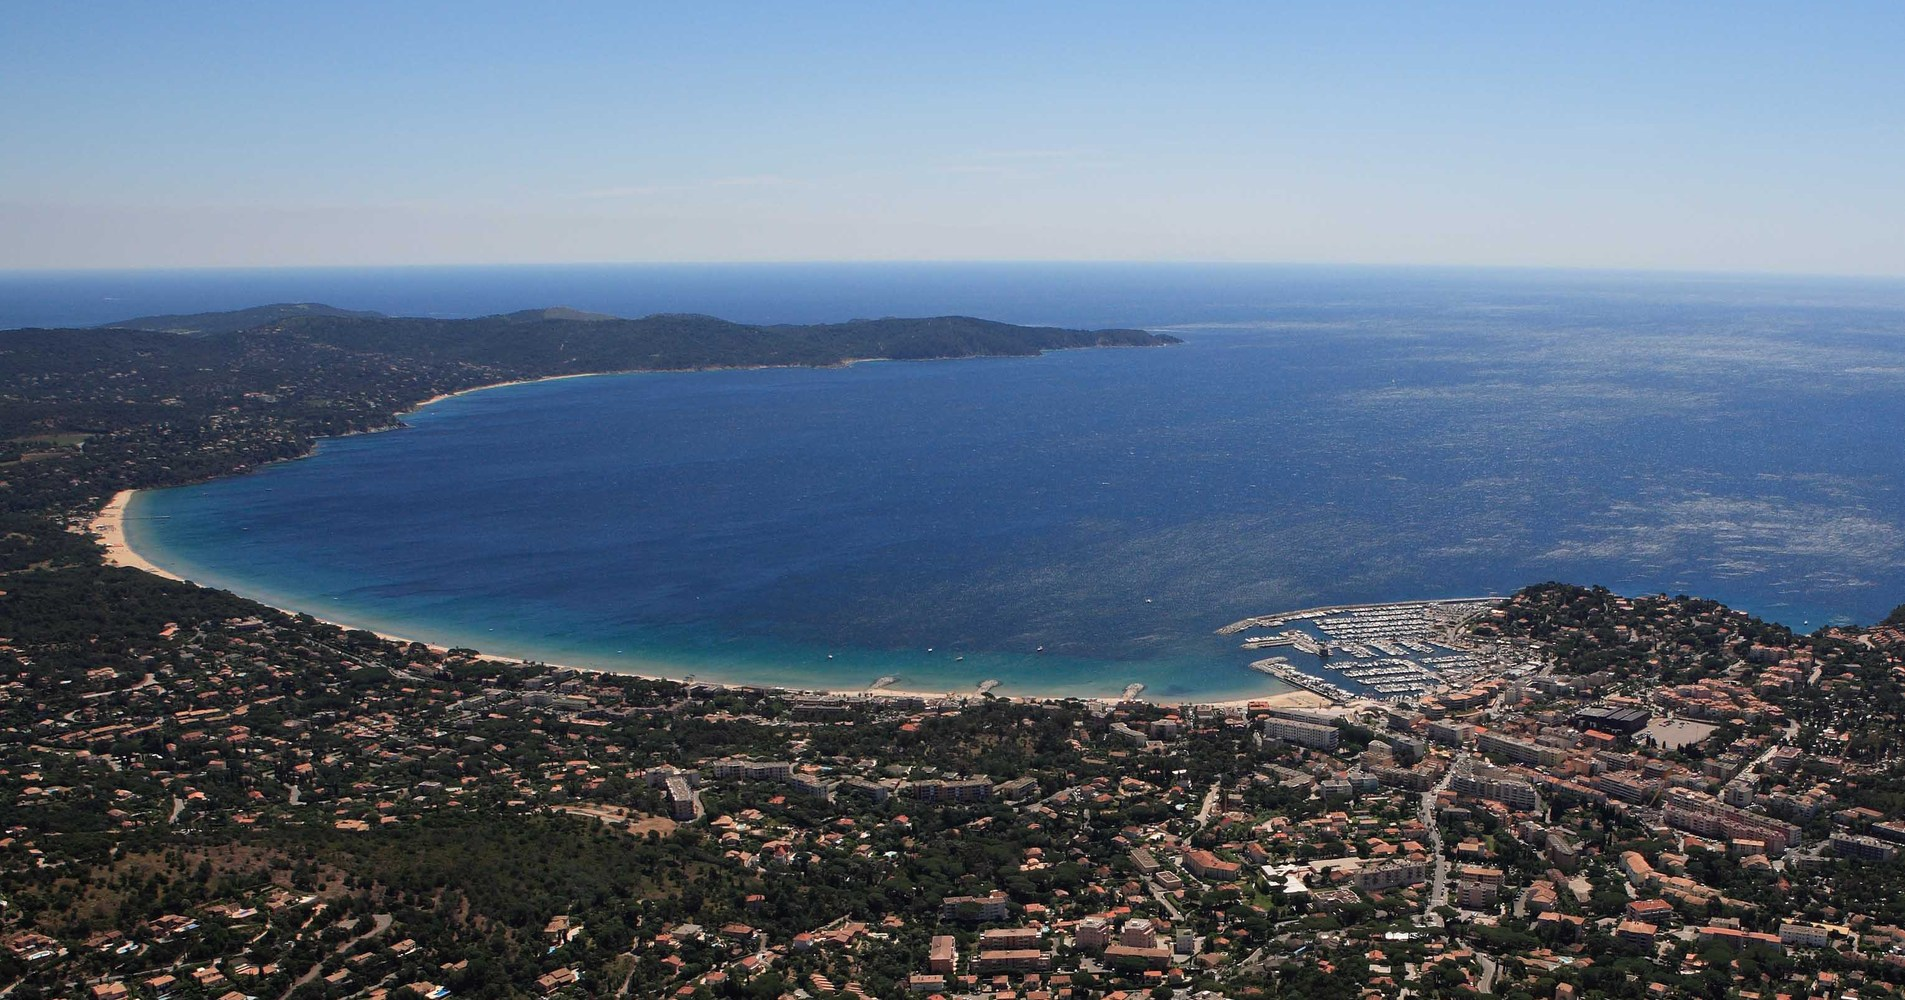 Cavalaire from the air